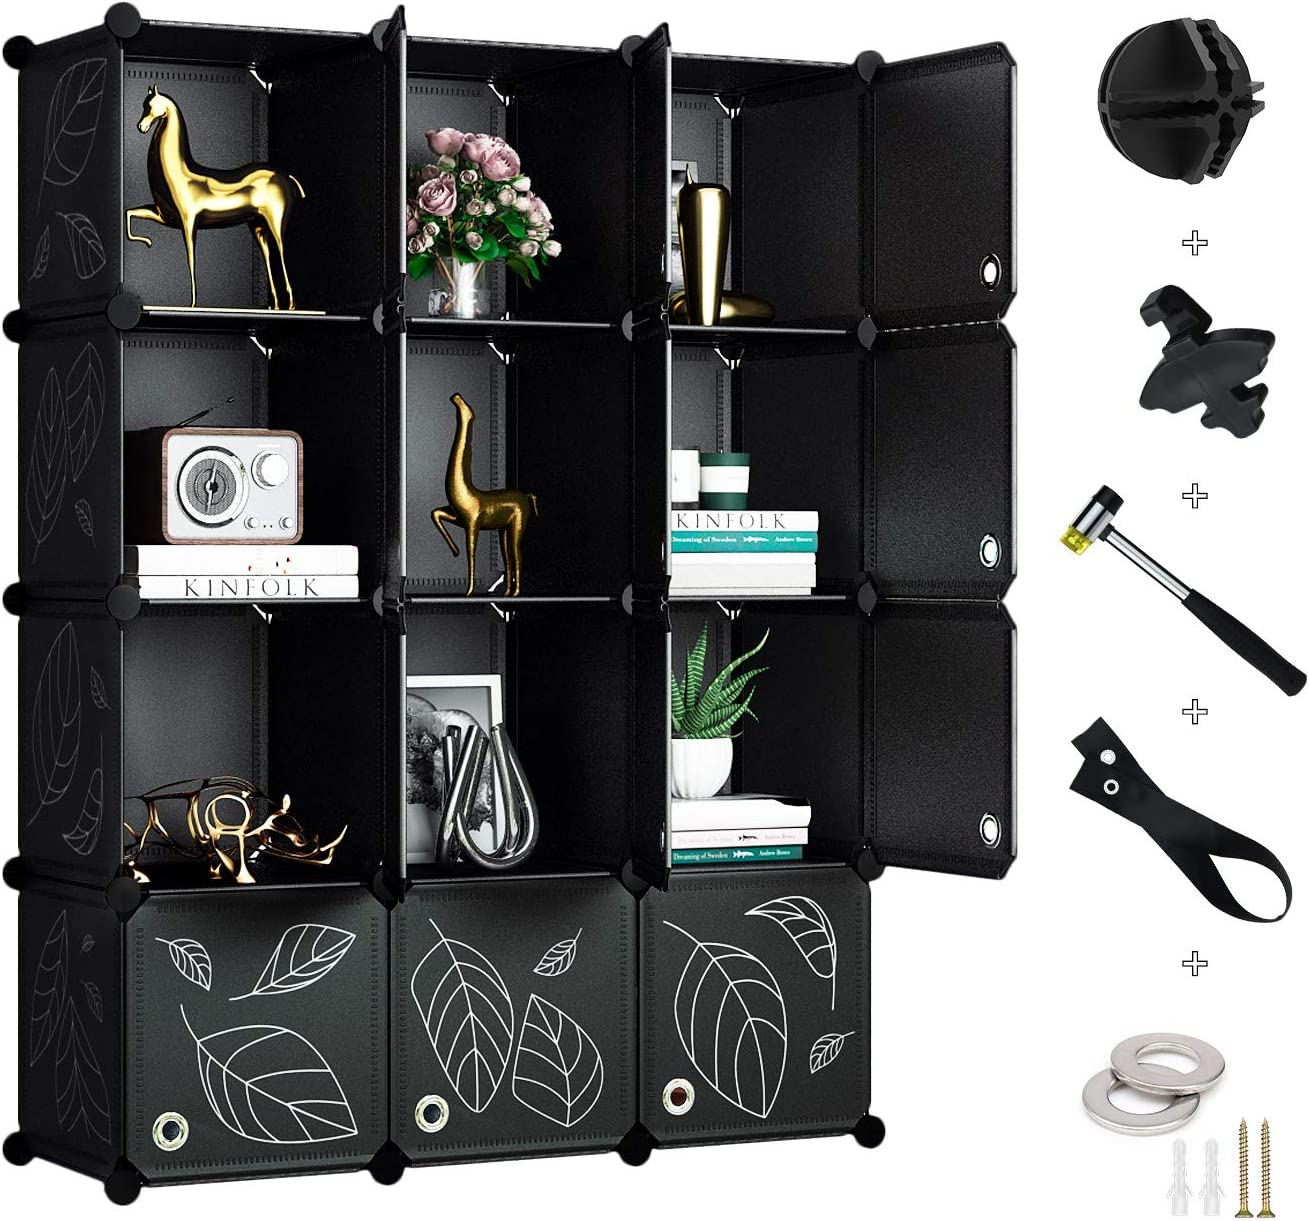 Greenstell 12 Cubes Storage Organizer with Doors,DIY Plastic Stackable Shelves Multifunctional Modular Bookcase Closet Cabinet for Books,Clothes,Toys,Artworks,Decorations (Black